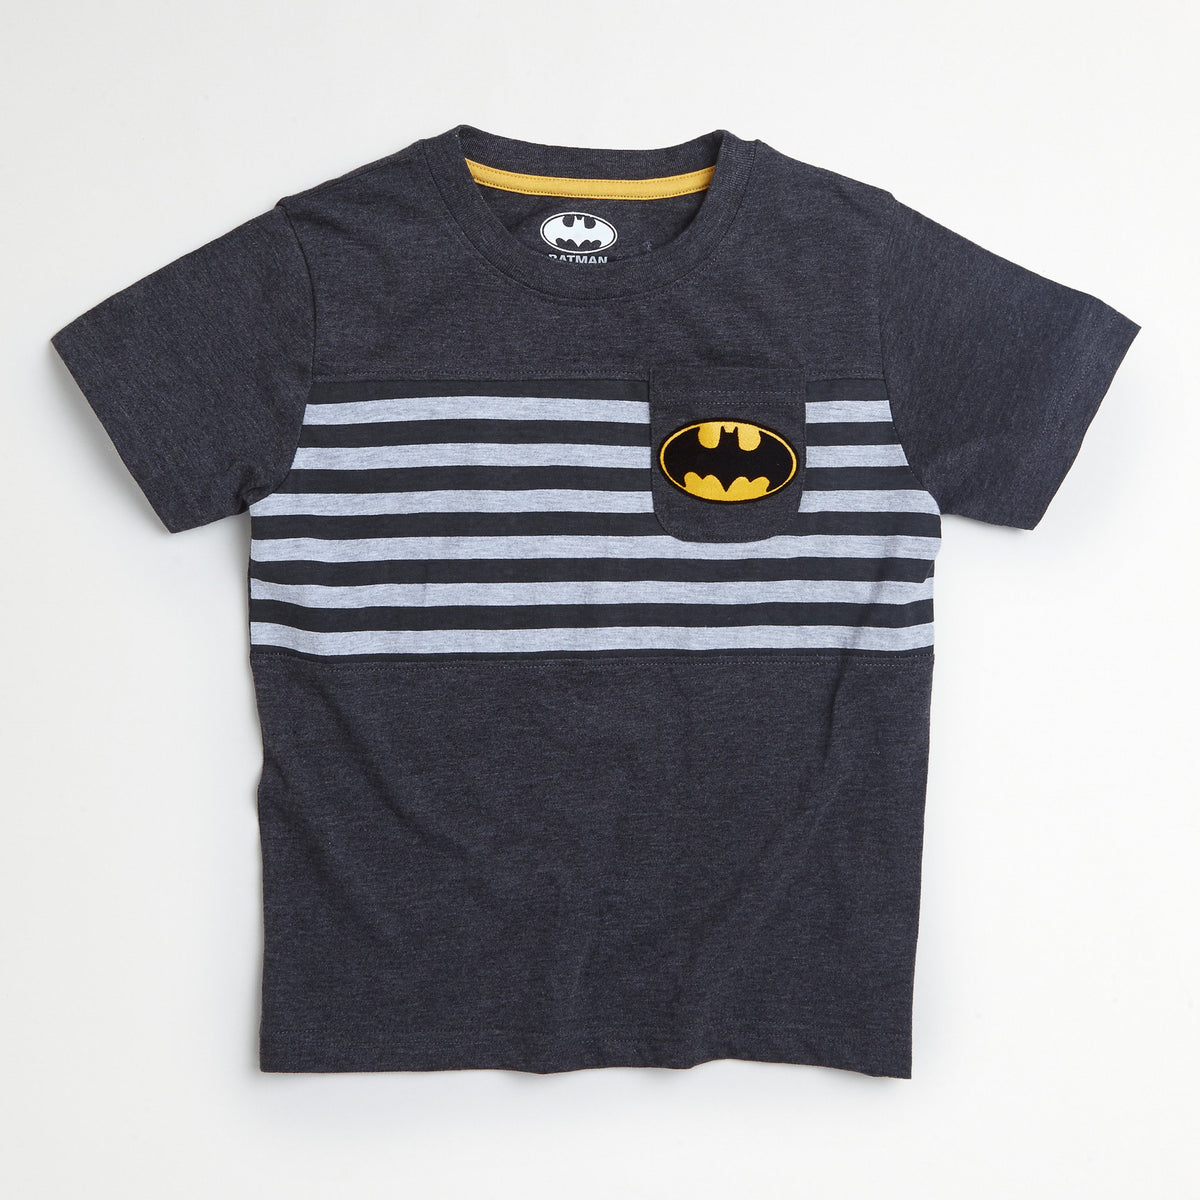 Batman Striped Tee